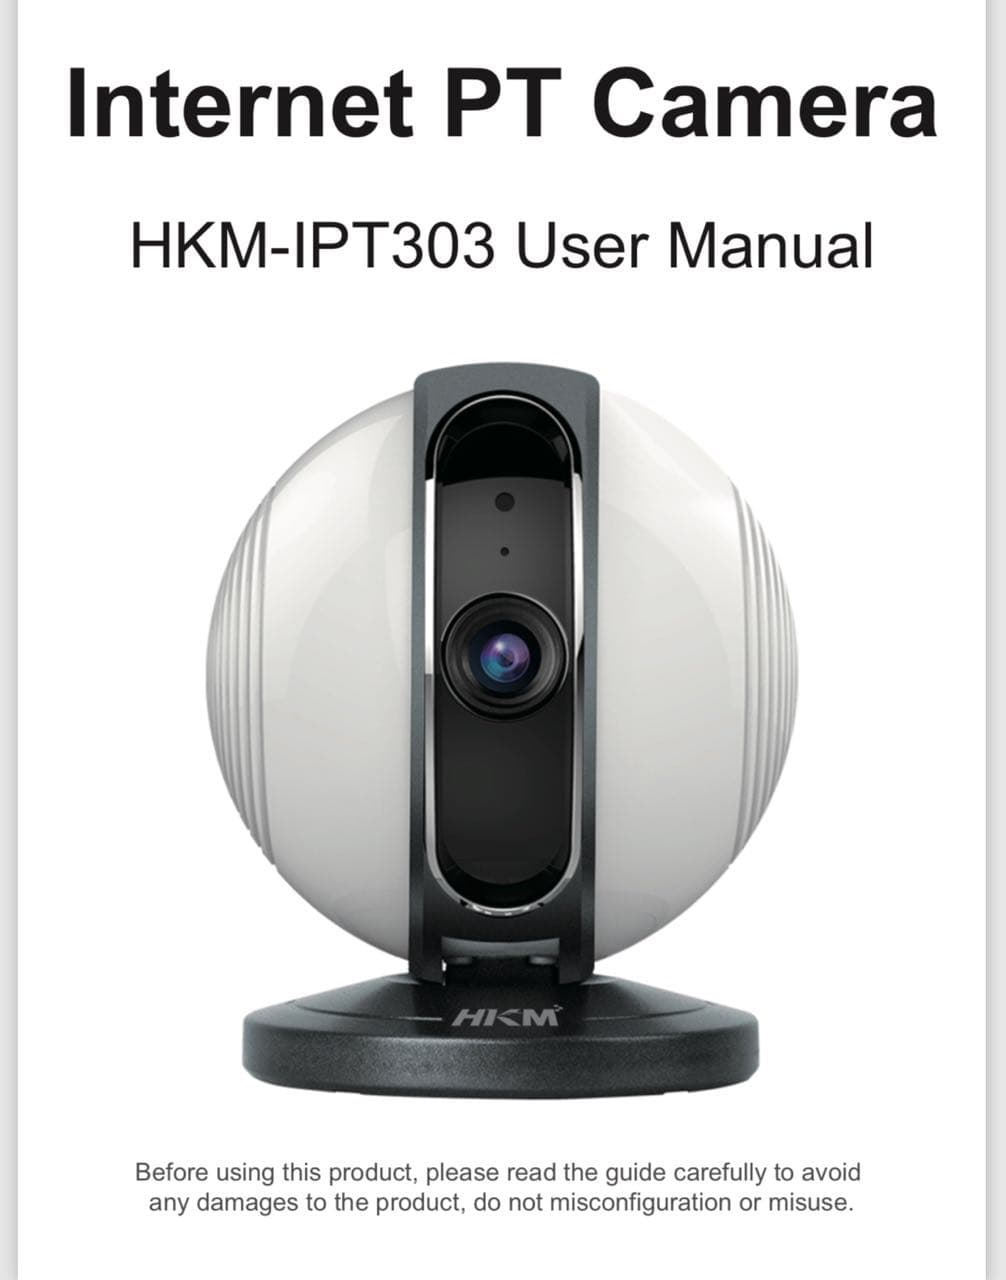 HAMA M360 300 Mbps WLAN IP Camera Driver